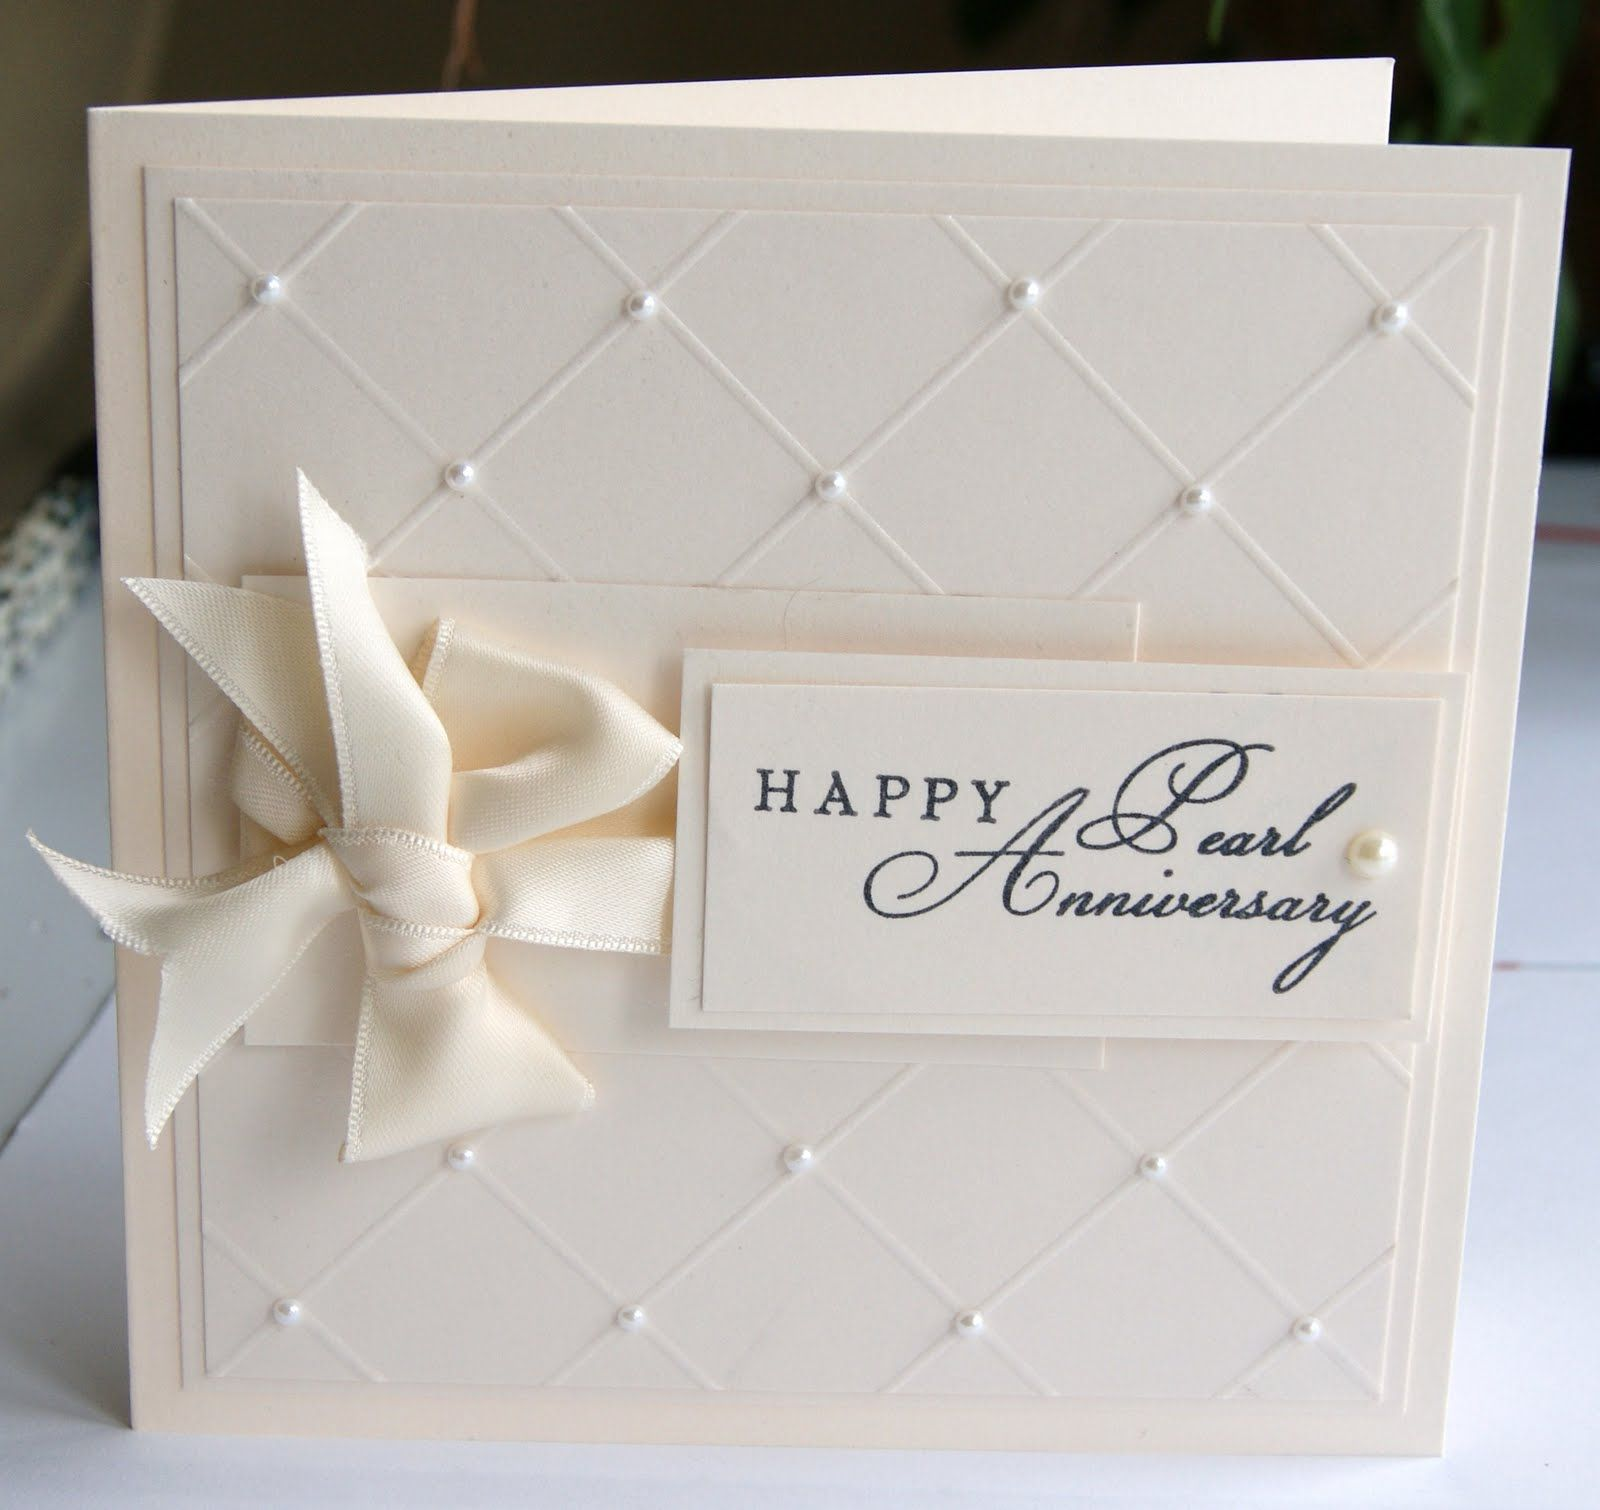 30th wedding anniversary decorations | Causeway Crafts: Pearl ...